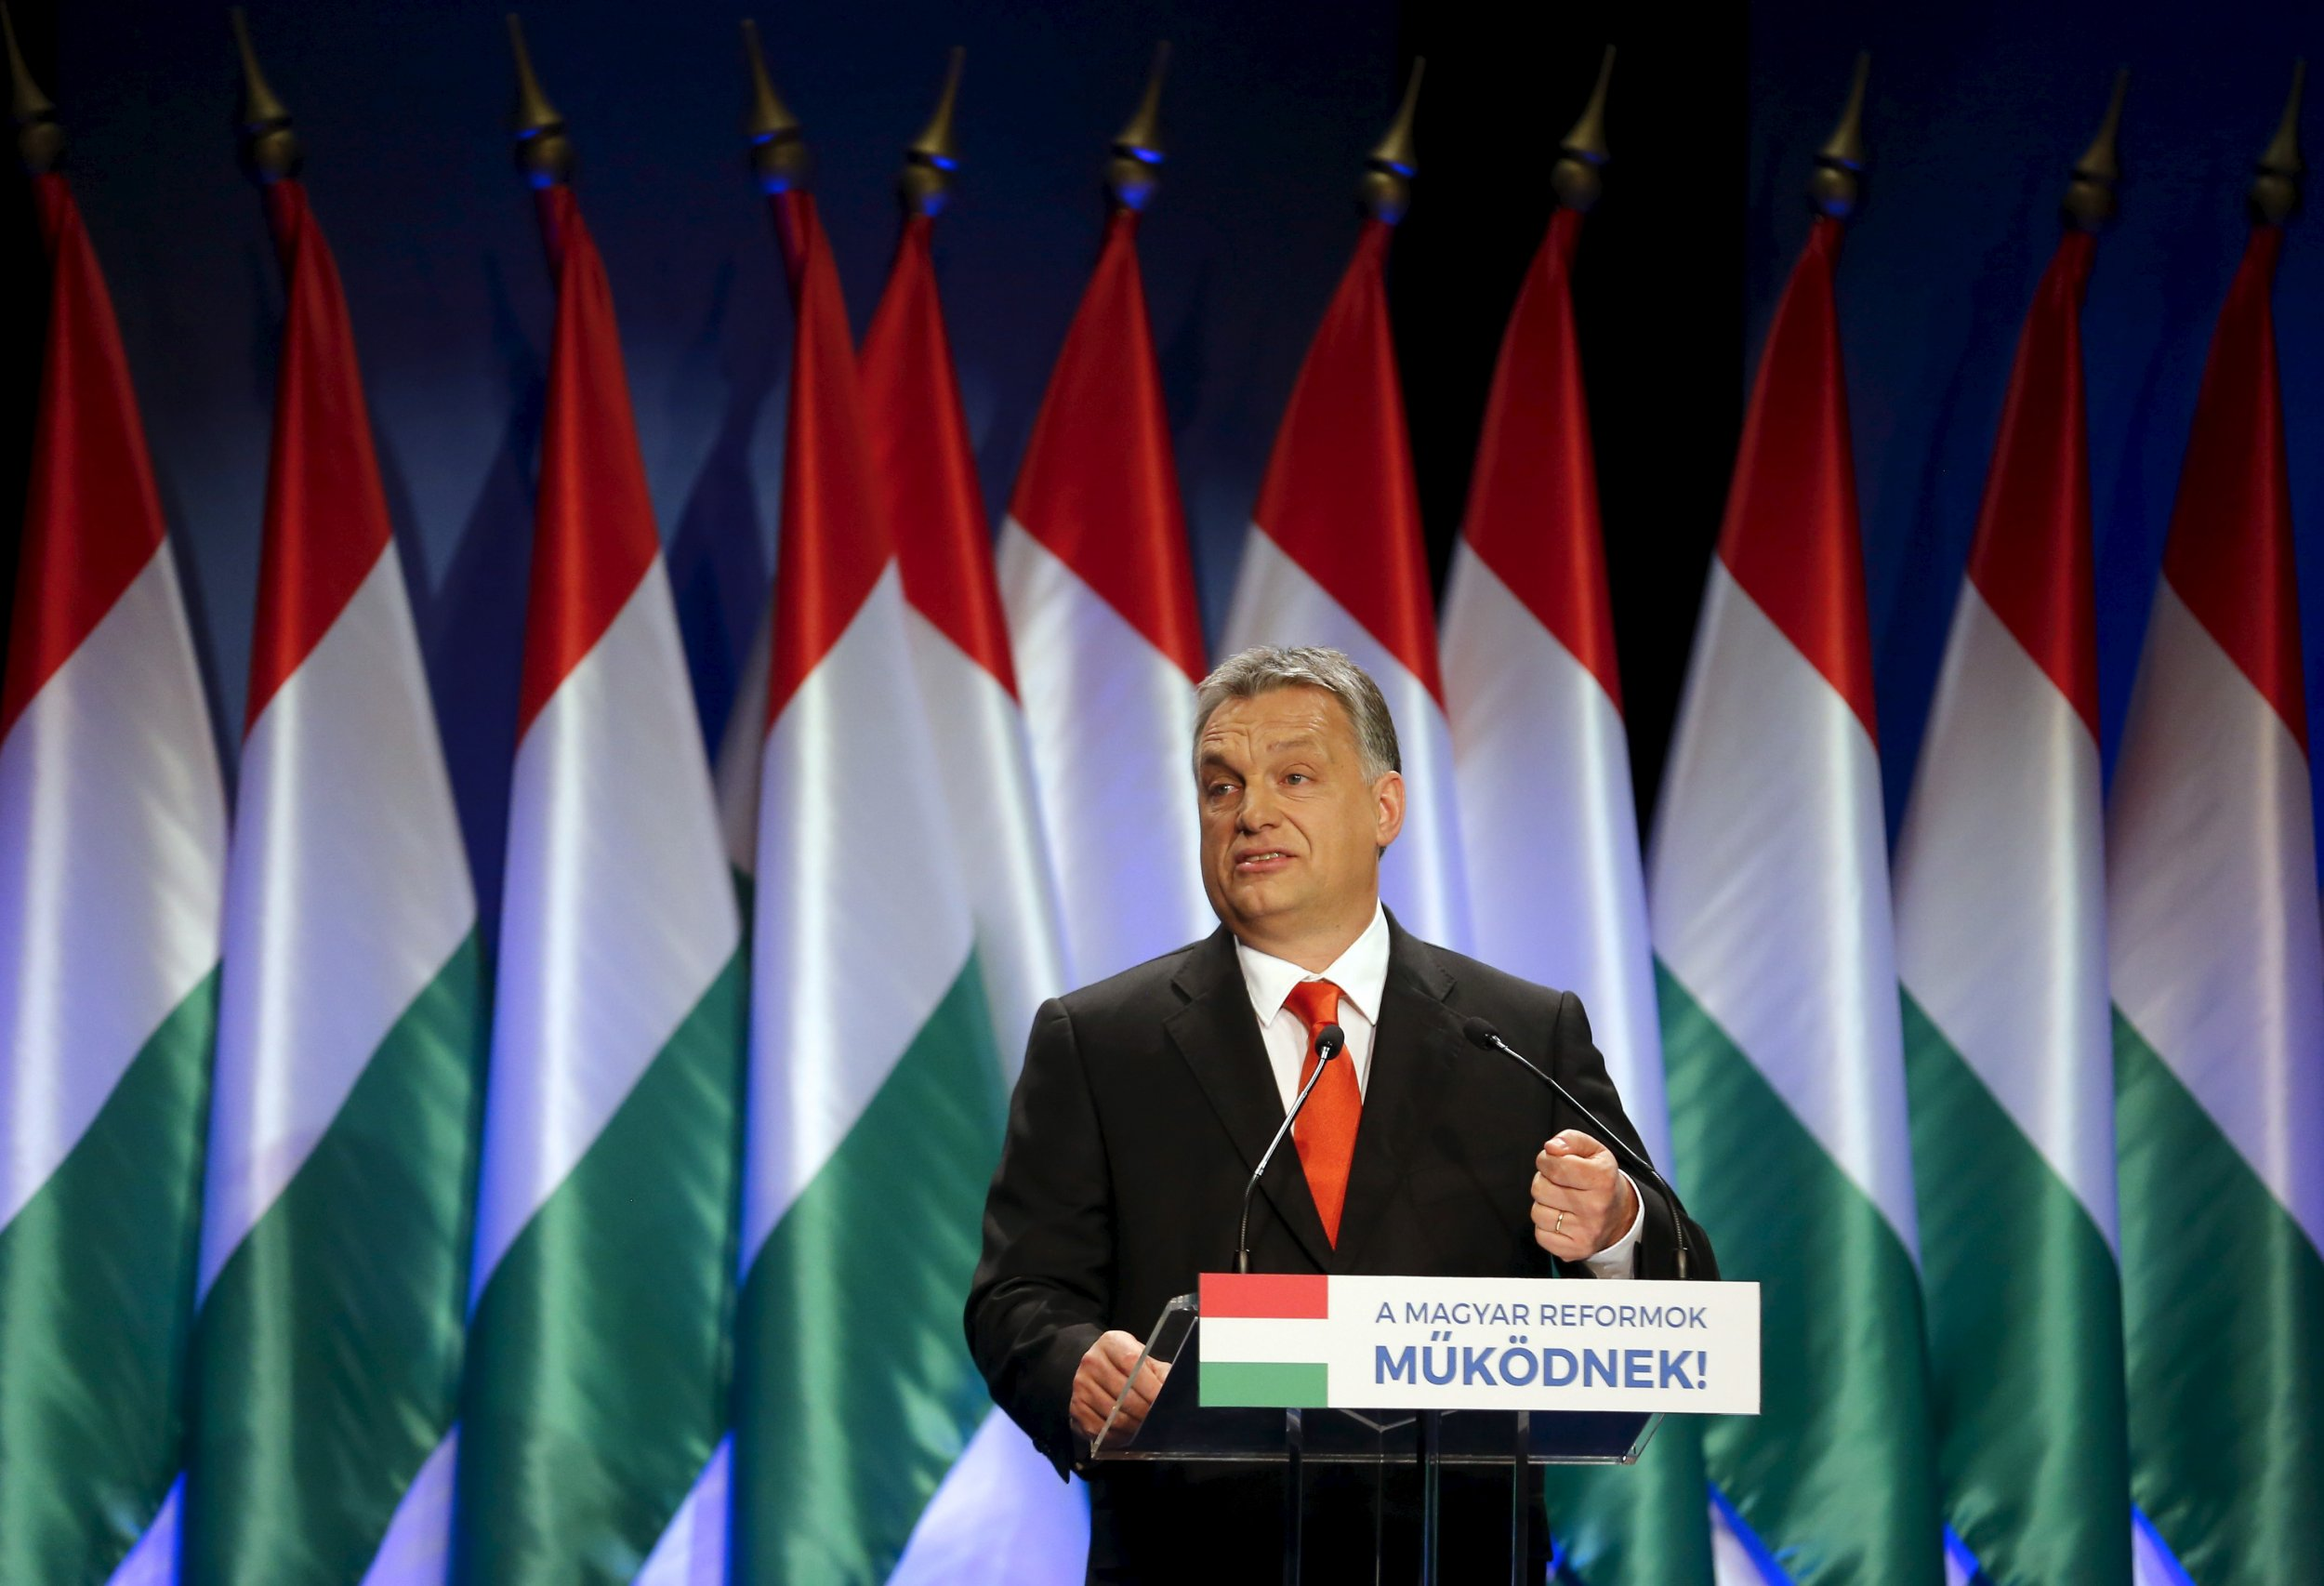 hungararian prime minister viktor orban threatens to build fence